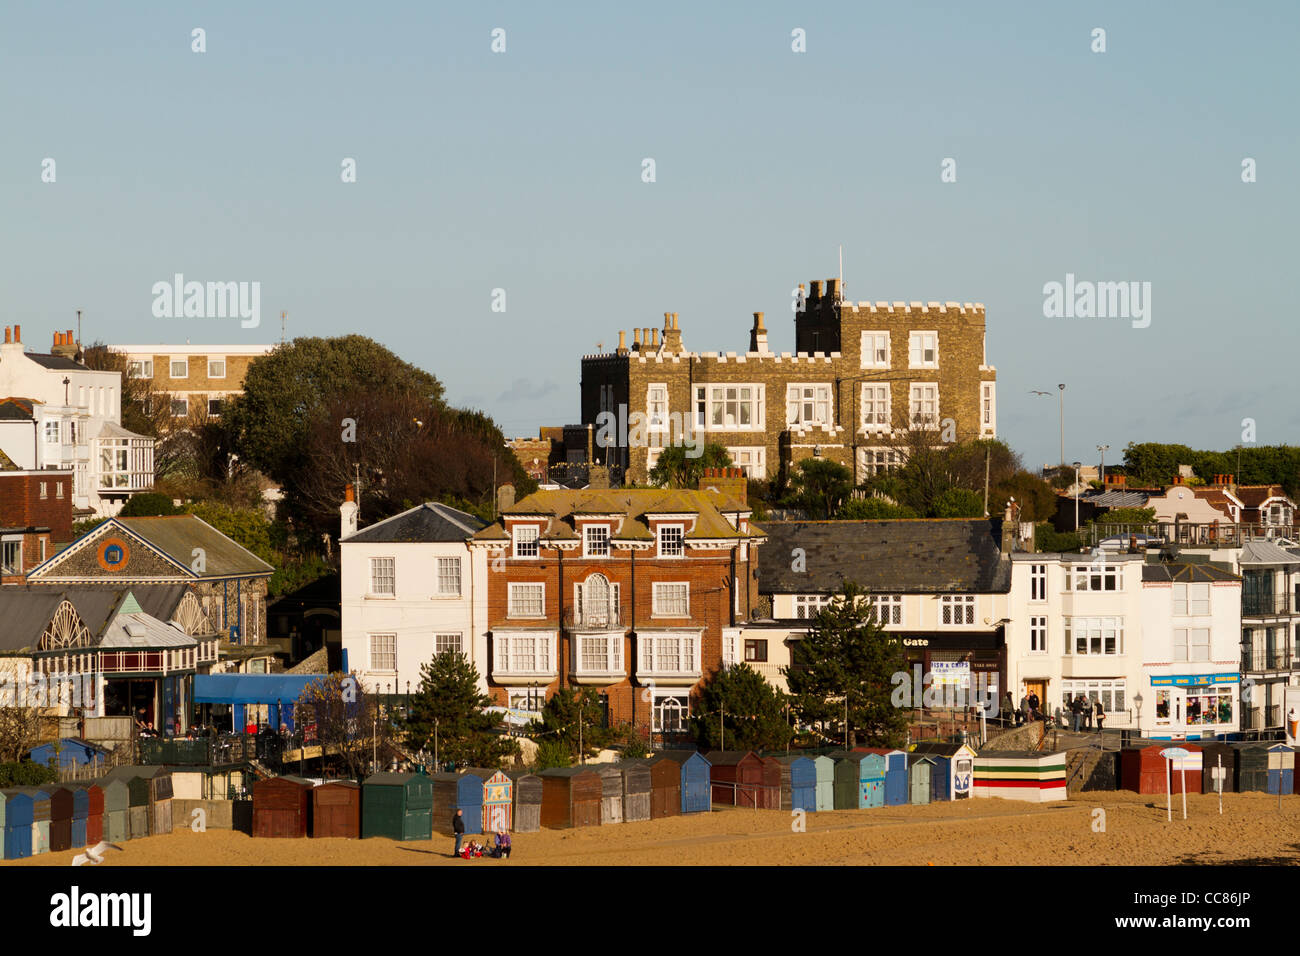 Broadstairs - Stock Image